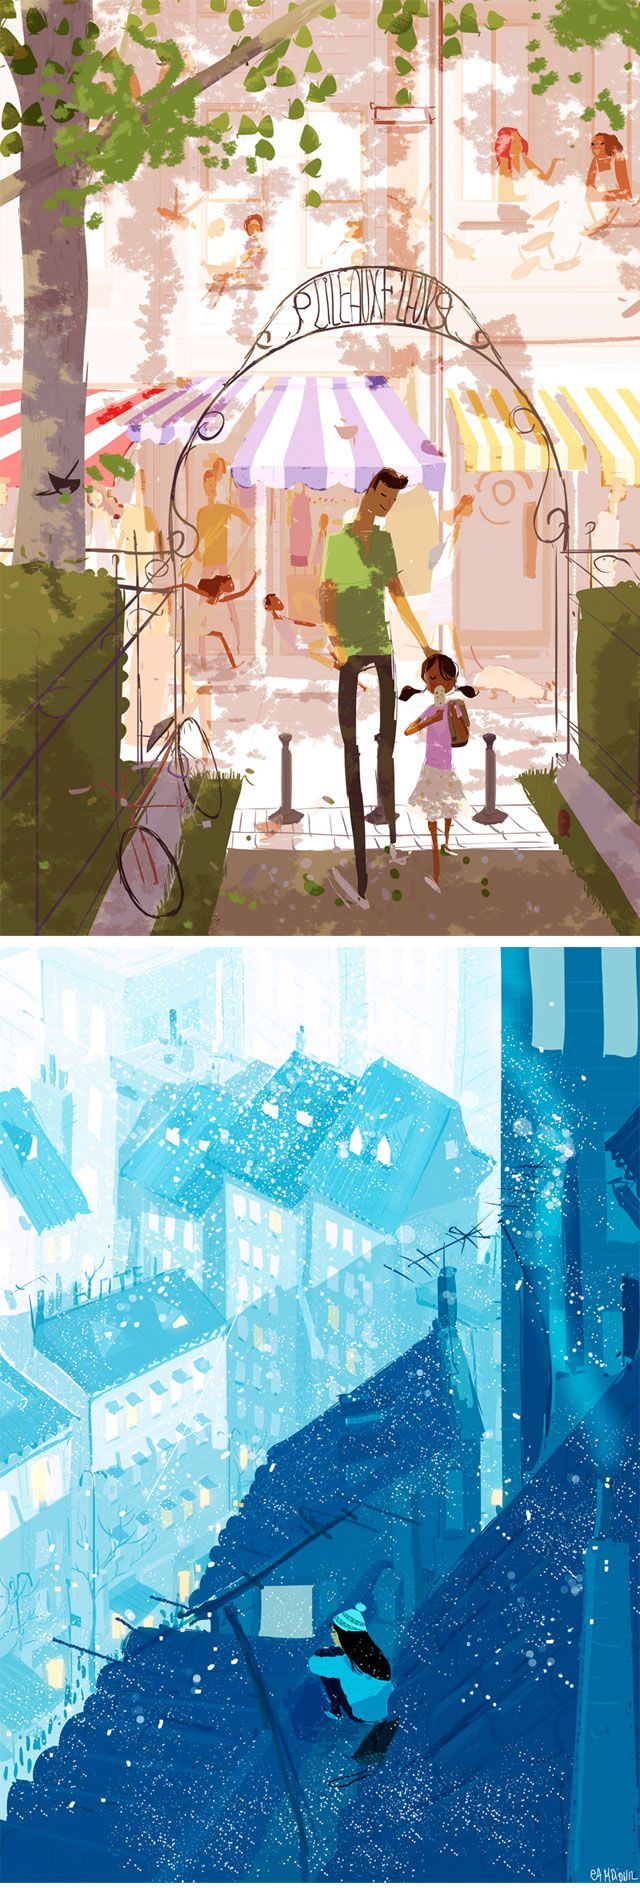 by the great Pascal Campion! ^-^  champion in illustration lightning!